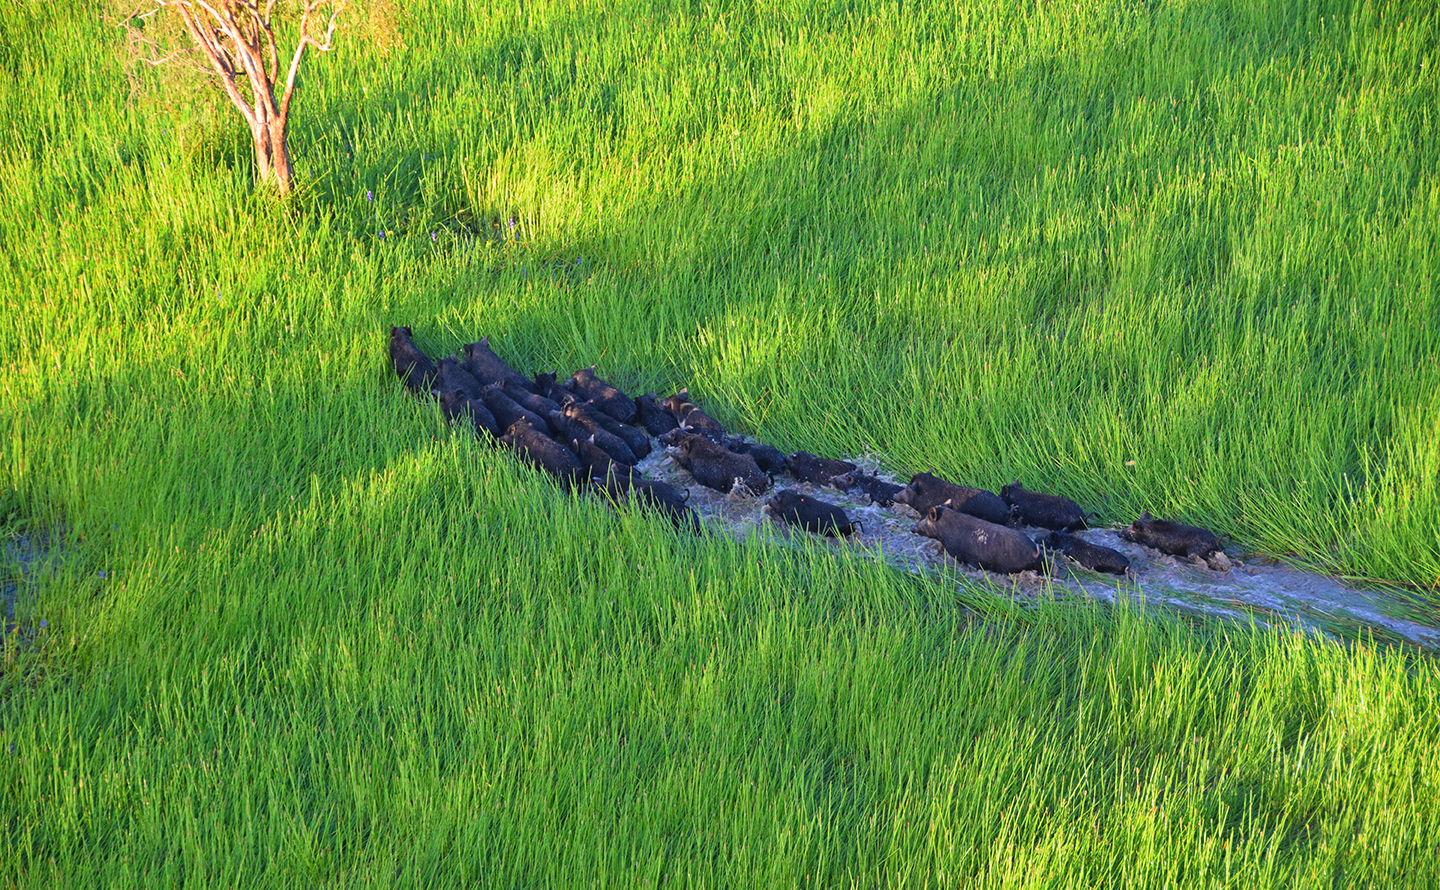 pigs wading through grassy wetland